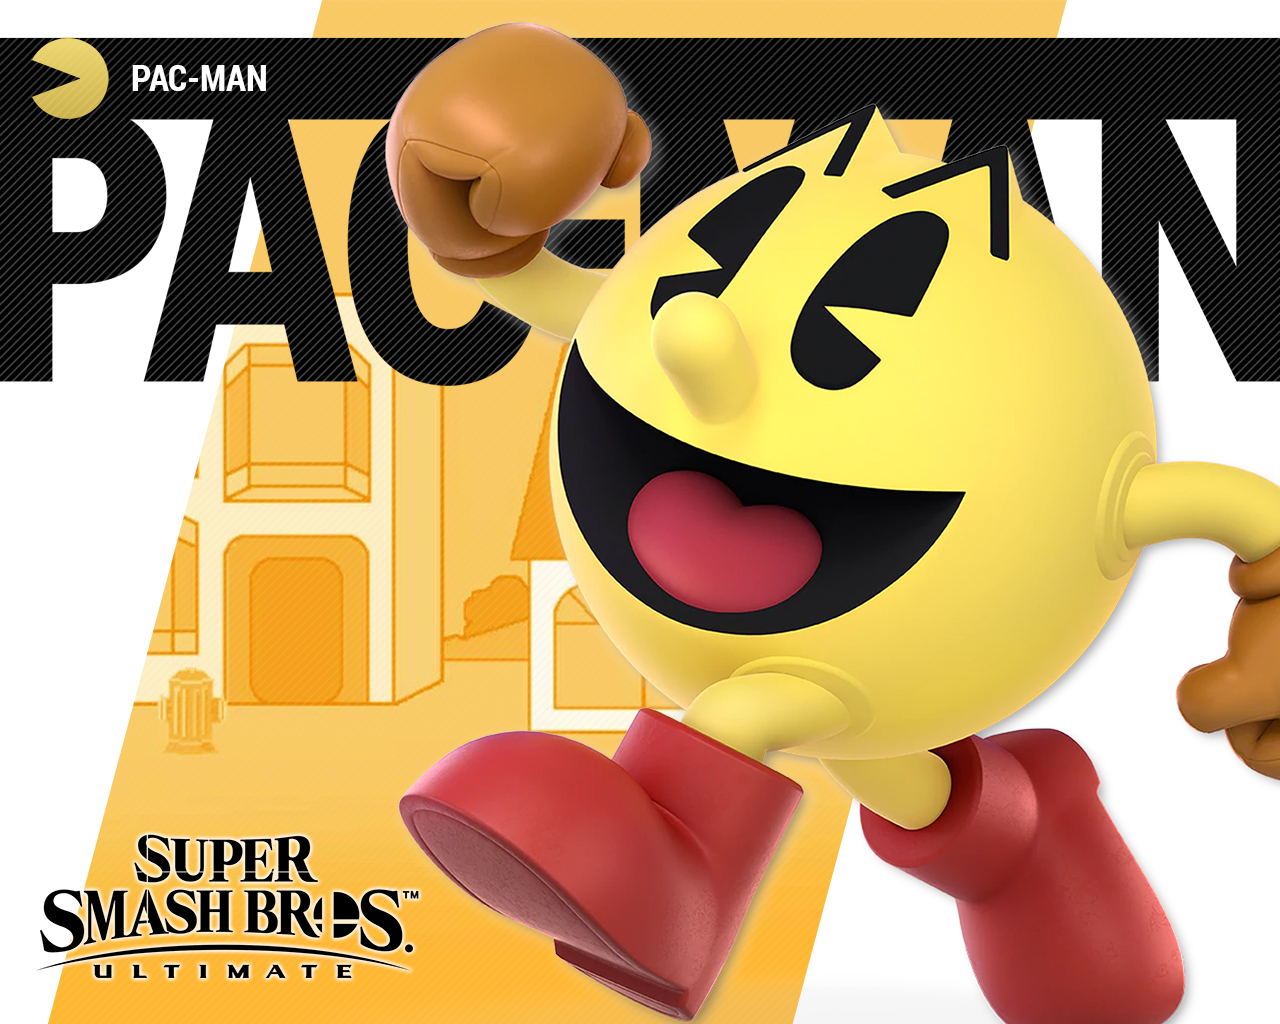 Pacman Wallpaper Iphone X Super Smash Bros Ultimate Pac Man Wallpapers Cat With